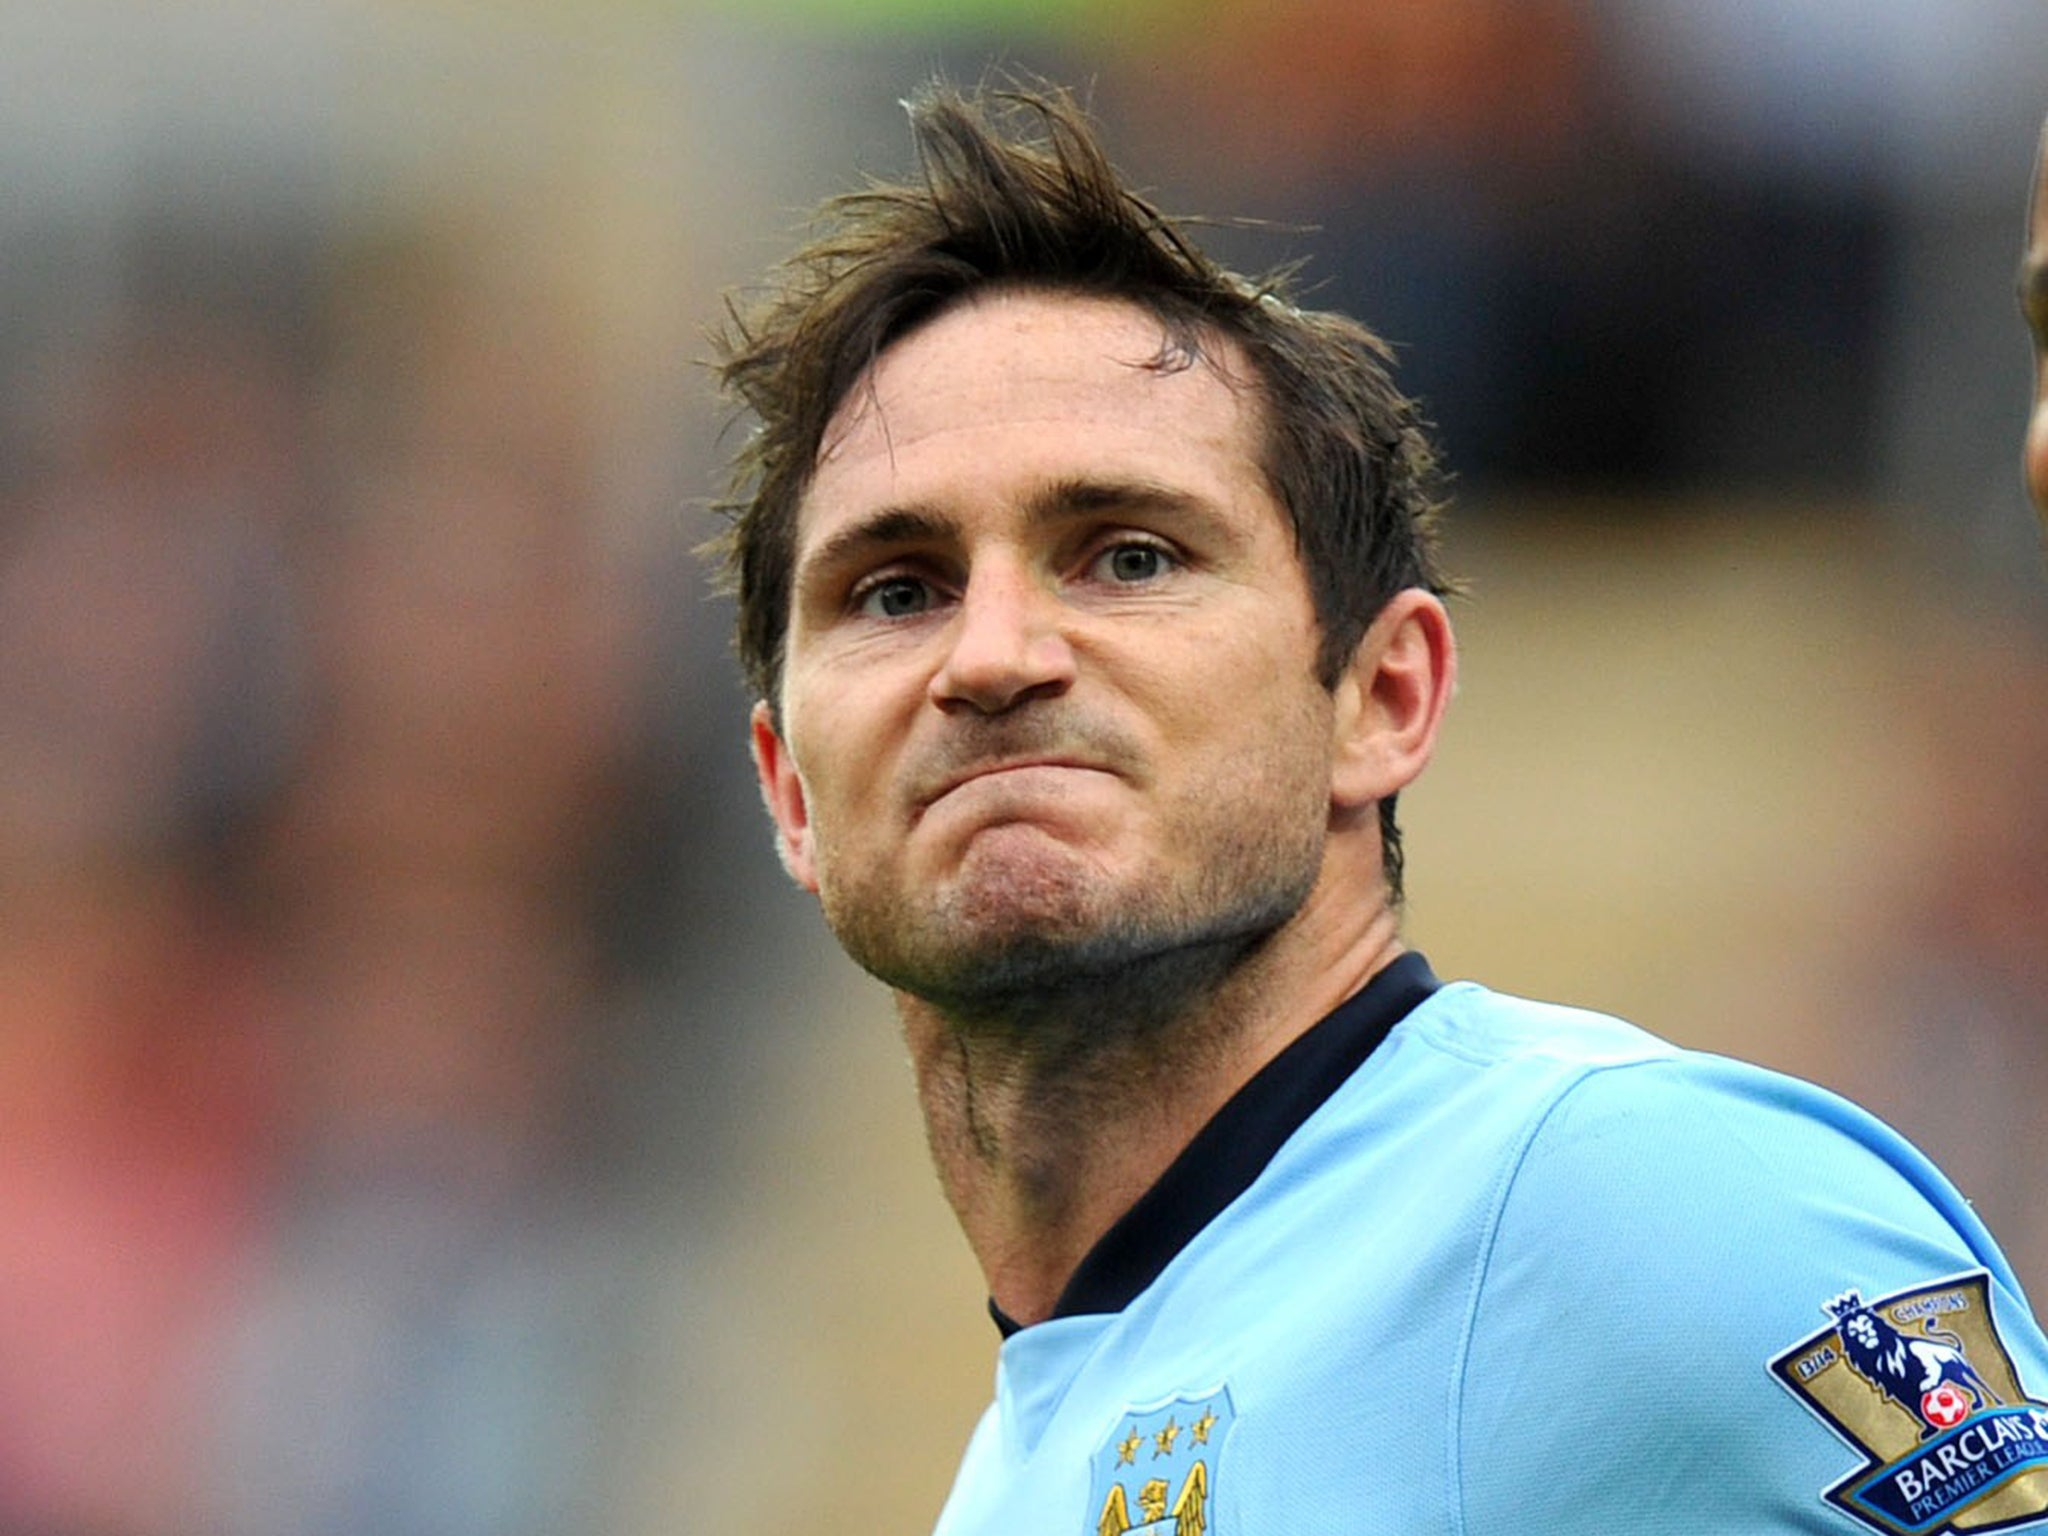 Frank Lampard is solely a Manchester City player and never